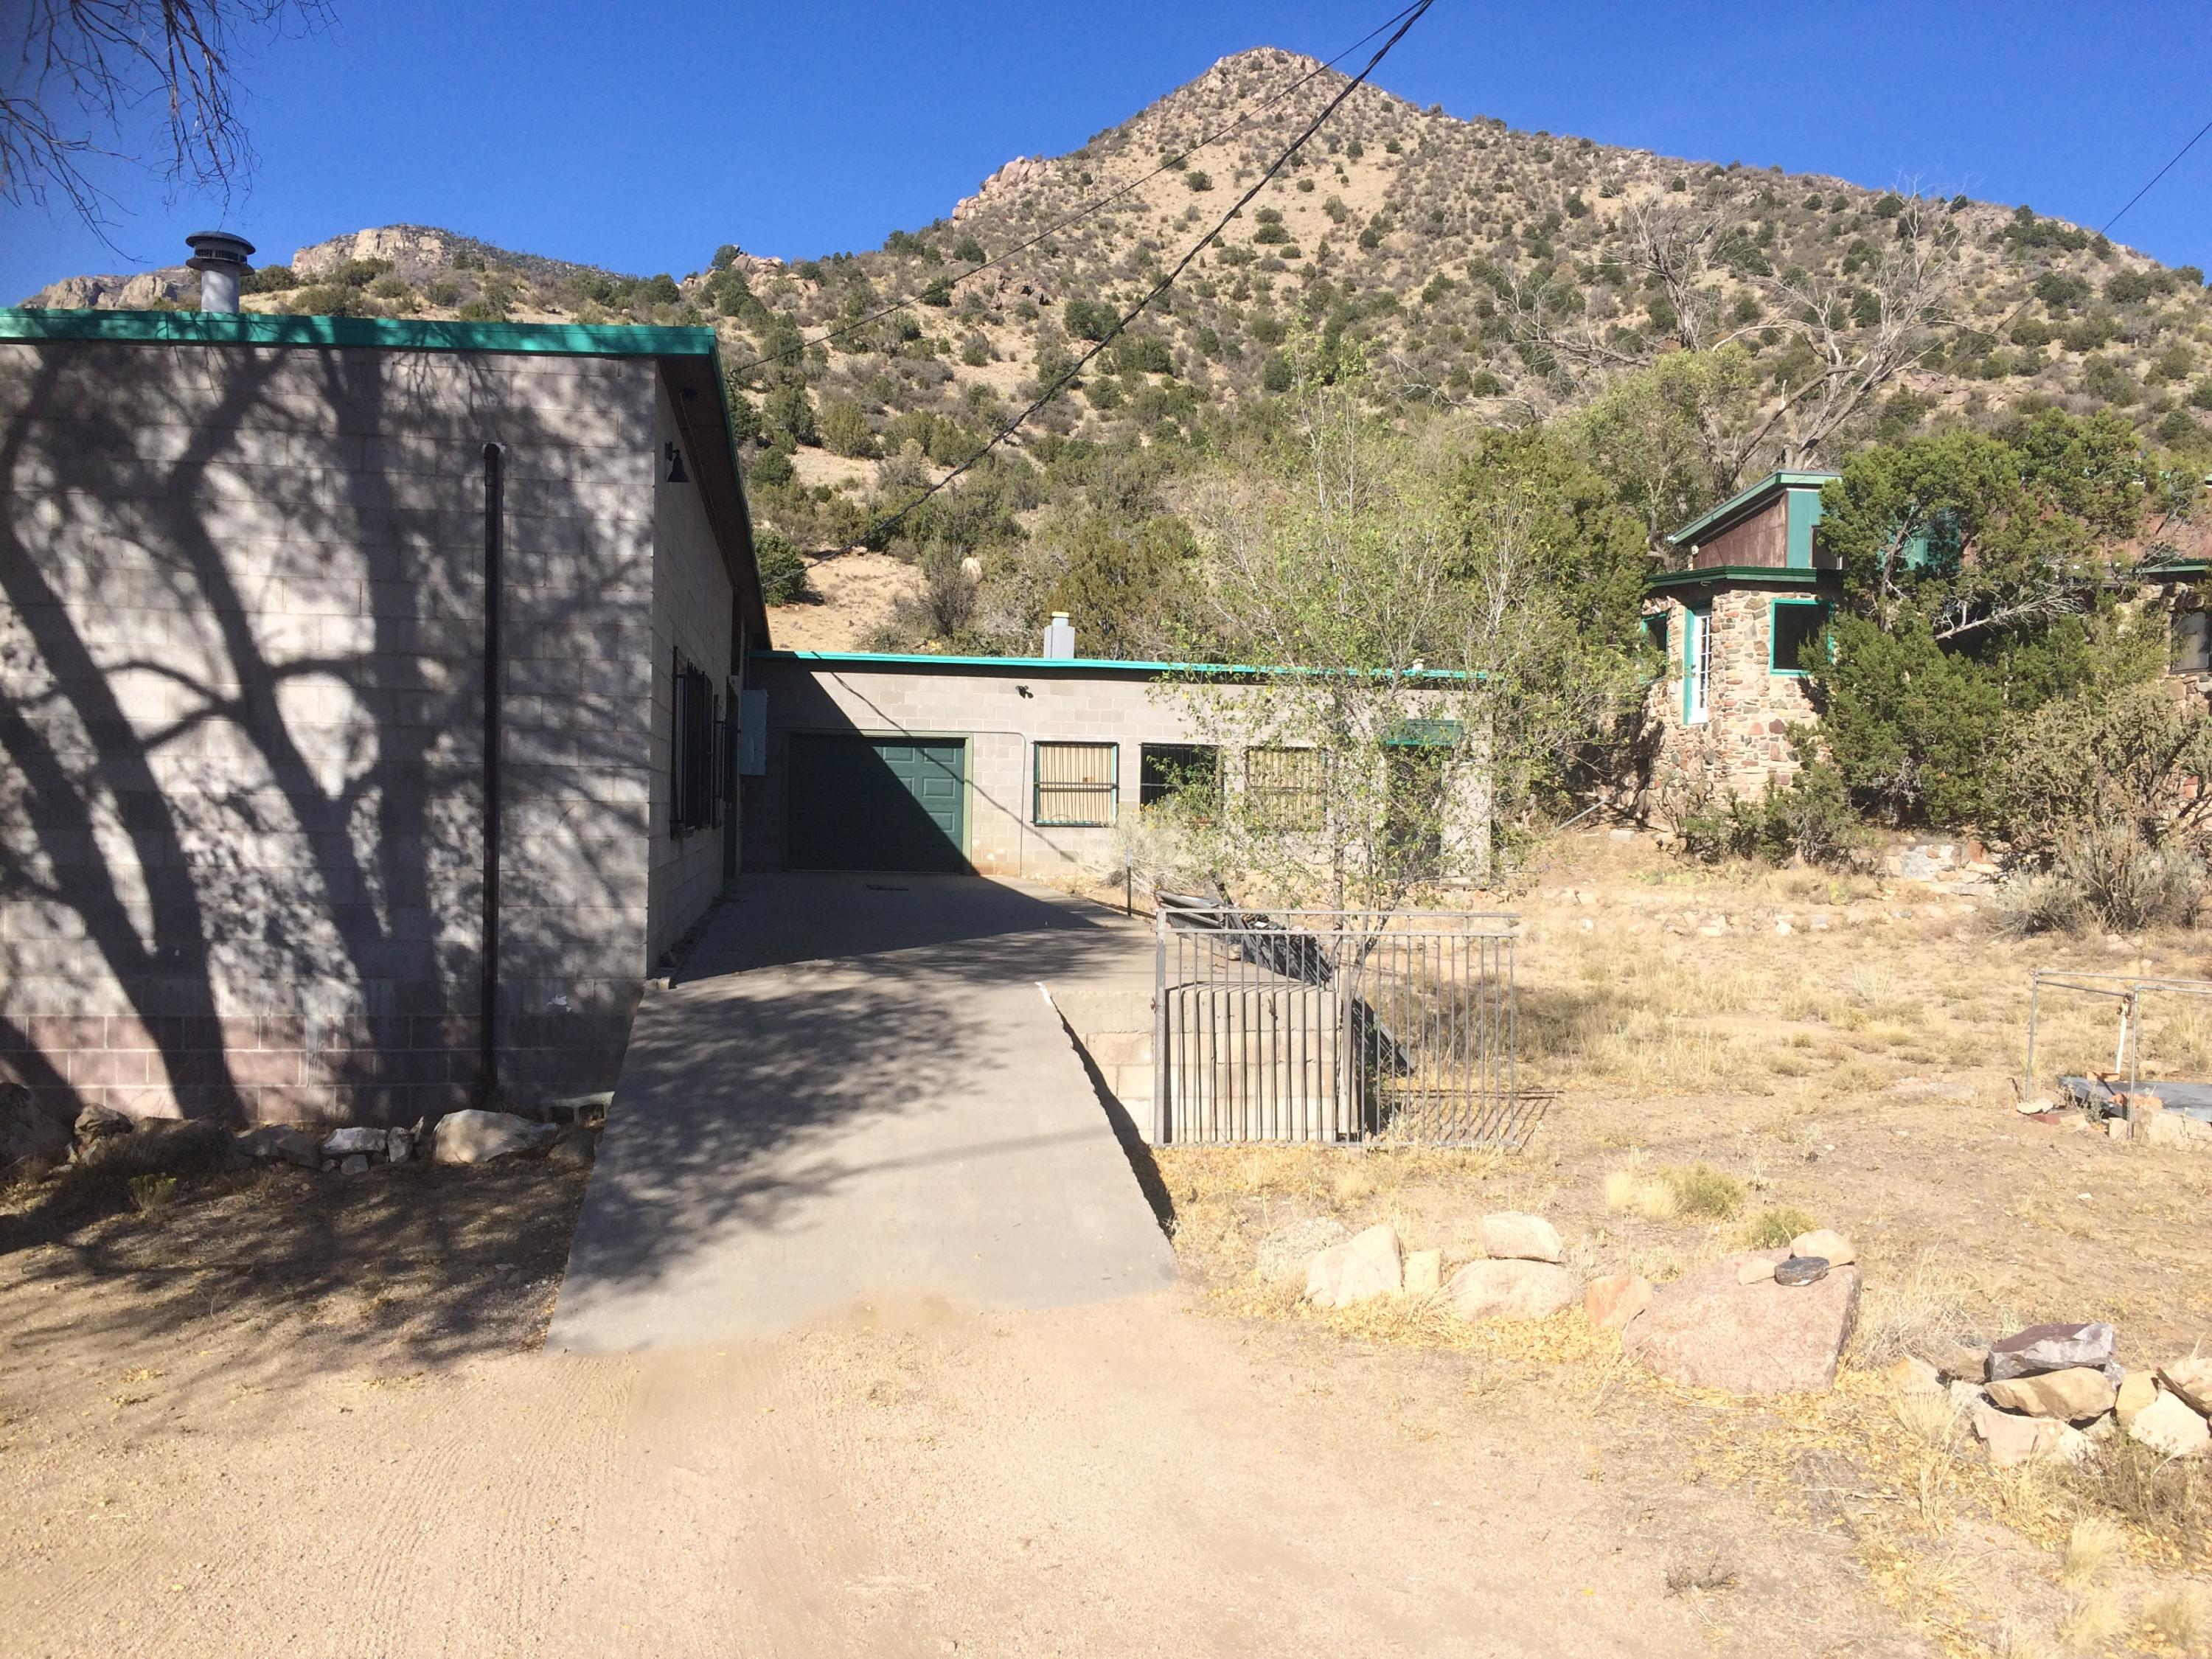 Totally Unique Property!  A 1,900 sq. ft. house with a separate Casita and... a 4,400 sq.ft. warehouse. This property is also listed as commercial. Warehouse subtitle for multi use ie: light manufacturing, auto repair...etc.Views are magnificent and close to ABQ.Potential, potential potential! Call agent for details on this fantastic opportunity.